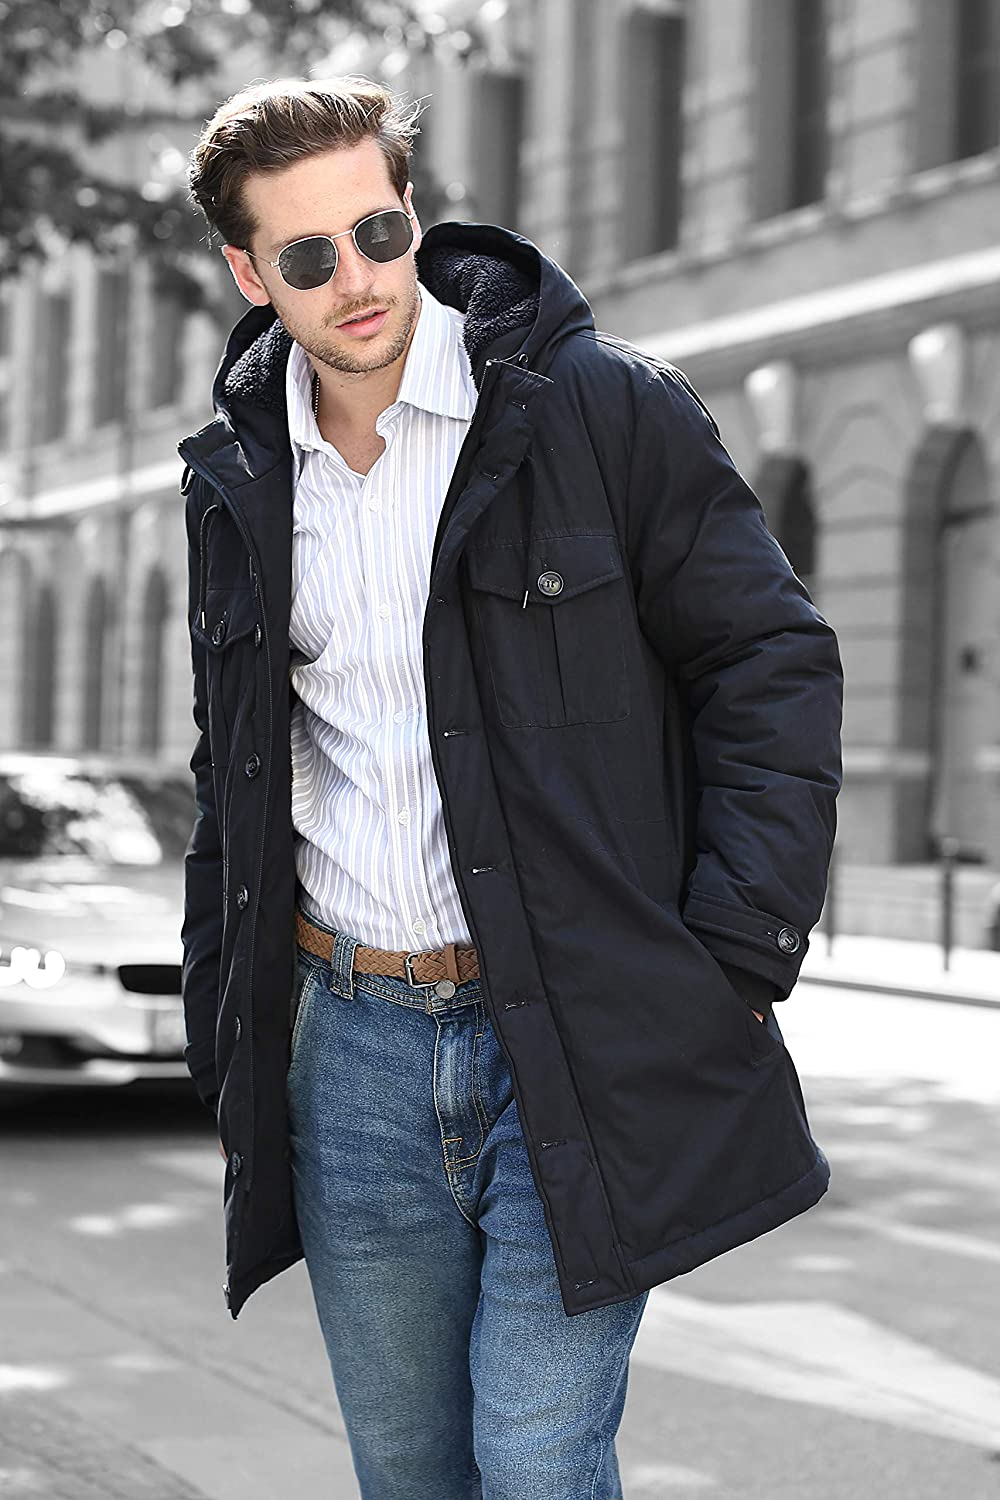 Faux Fur Lined YsCube 3-in-1 Warm Winter Parka Coat for Men Windproof Shell and Interior Belt to Keep Warm in Cold Snow Winter